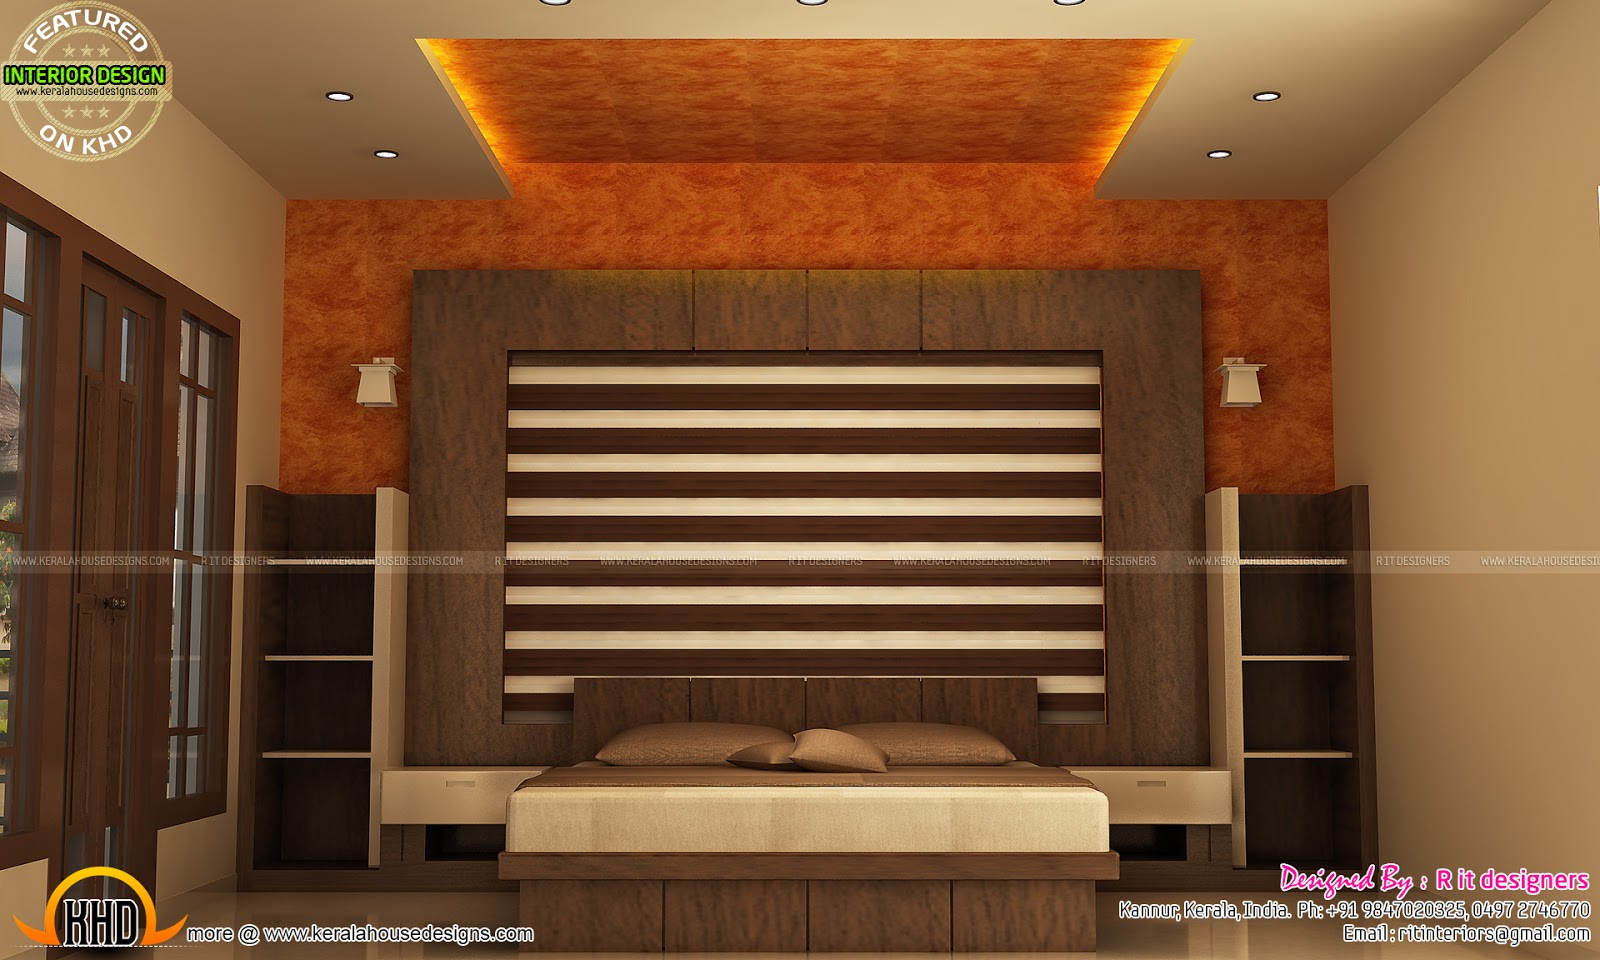 Bedroom Design Ideas Kerala